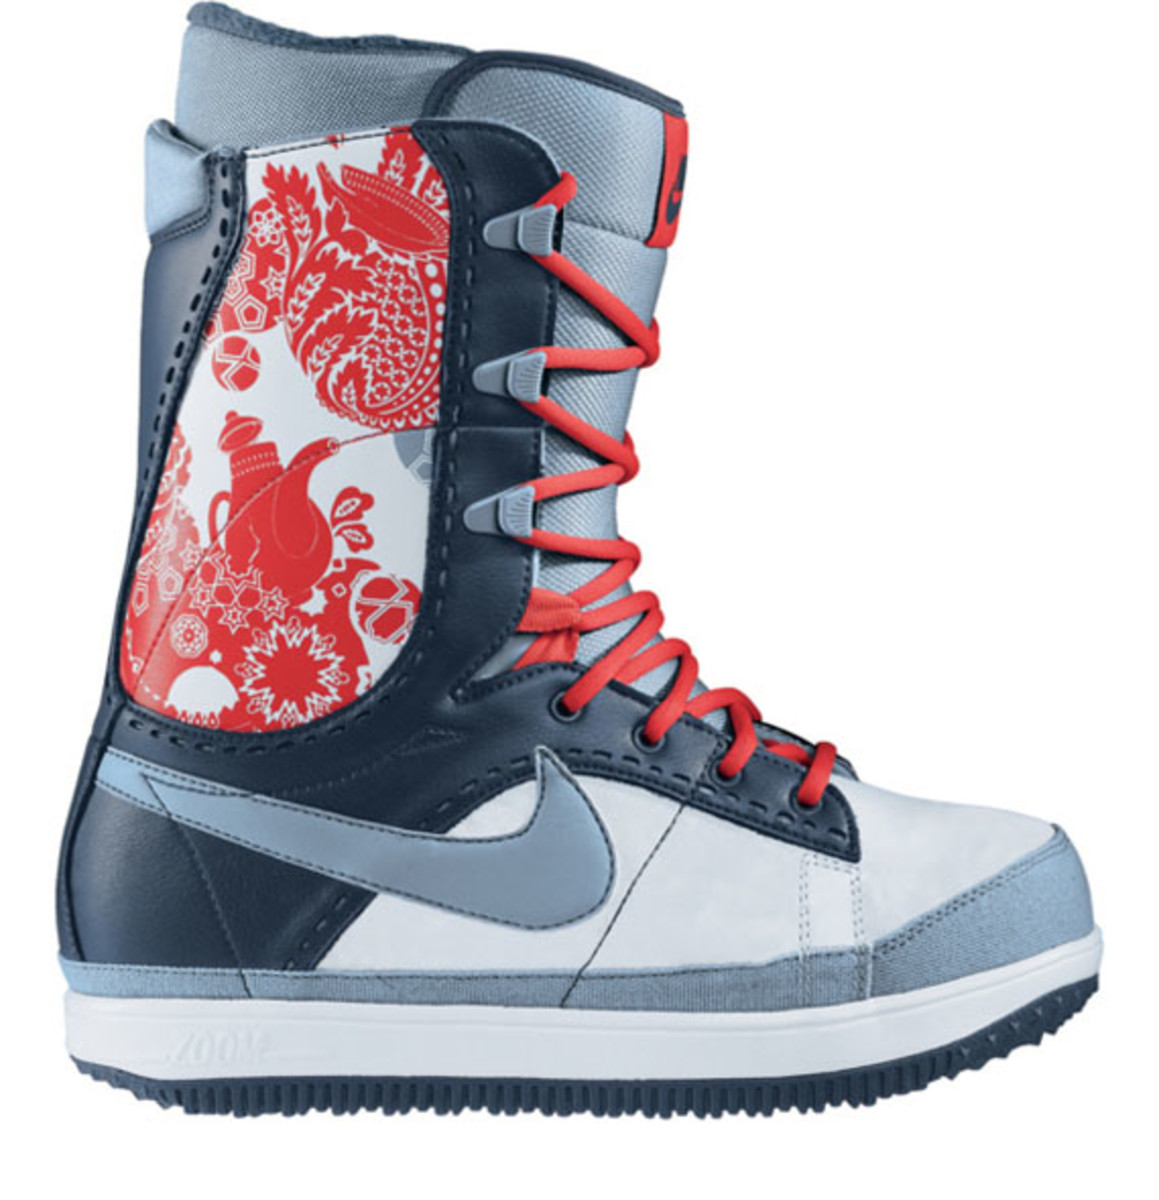 nike-snowboarding-boots-12